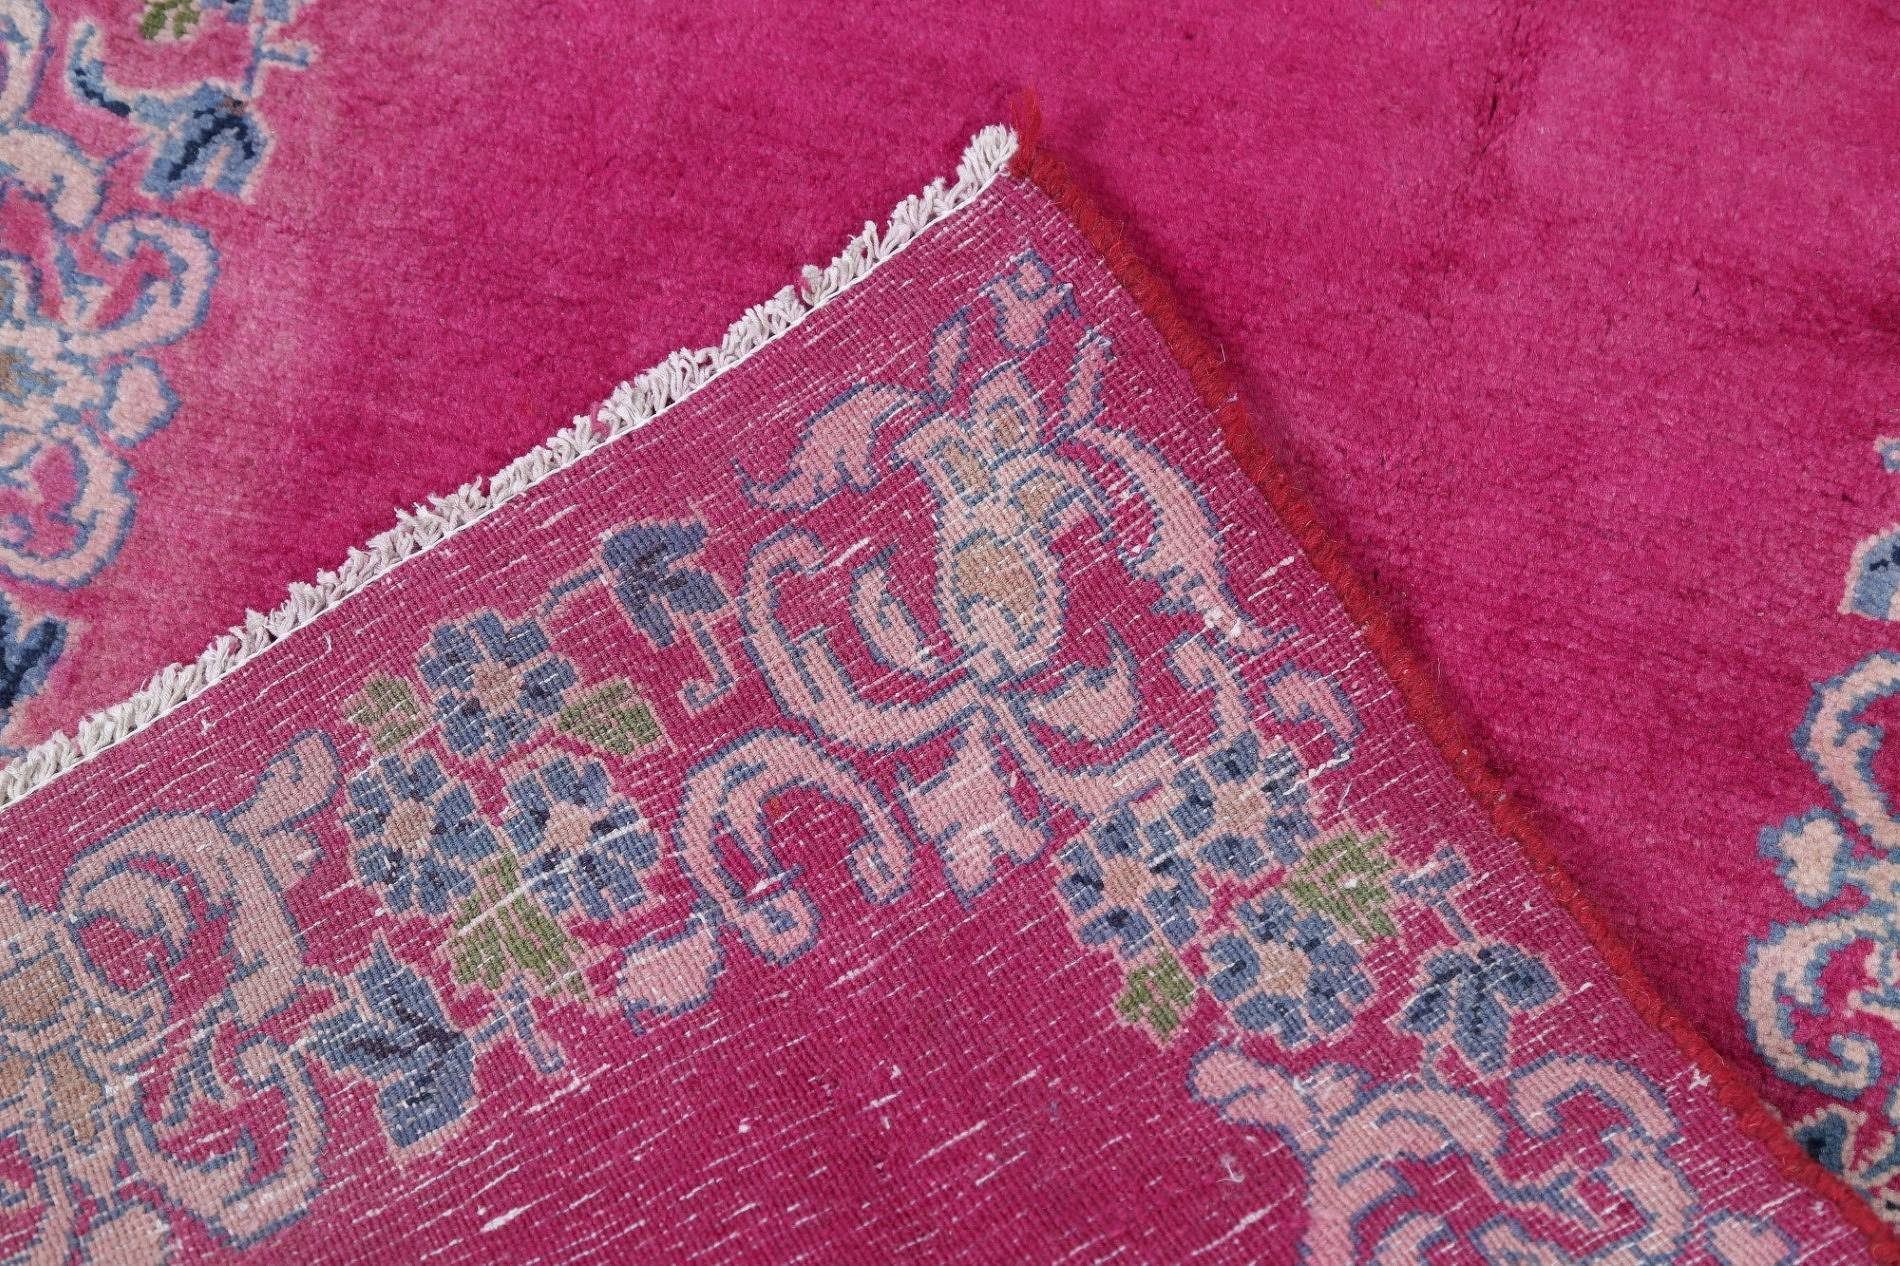 Magenta Pink Tabriz Persian Hand-Knotted 3x8 Wool Runner Rug